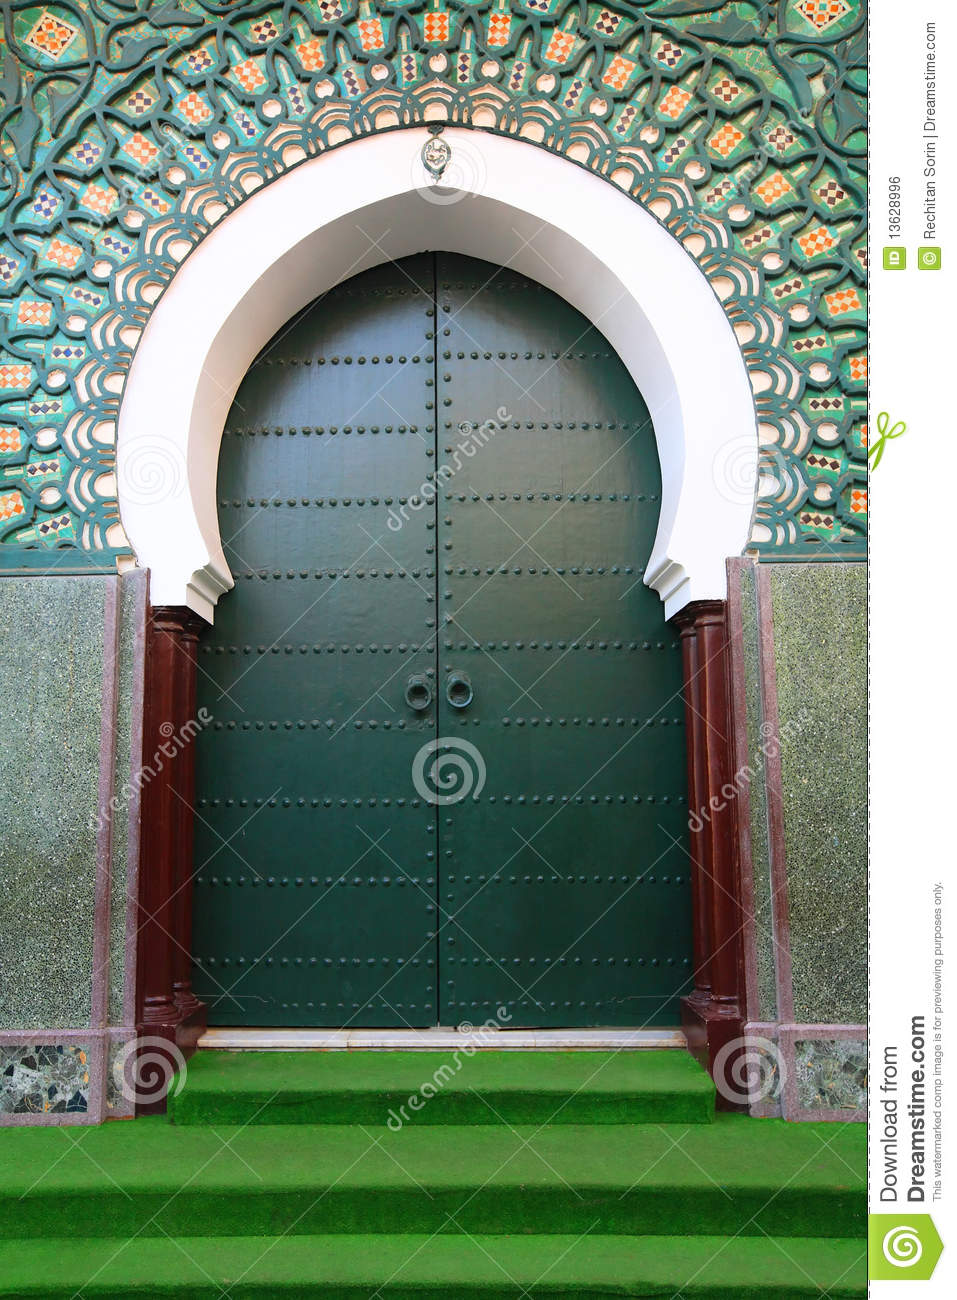 Porte marocaine traditionnelle photo stock image 13628996 for Porte de versailles salon maroc